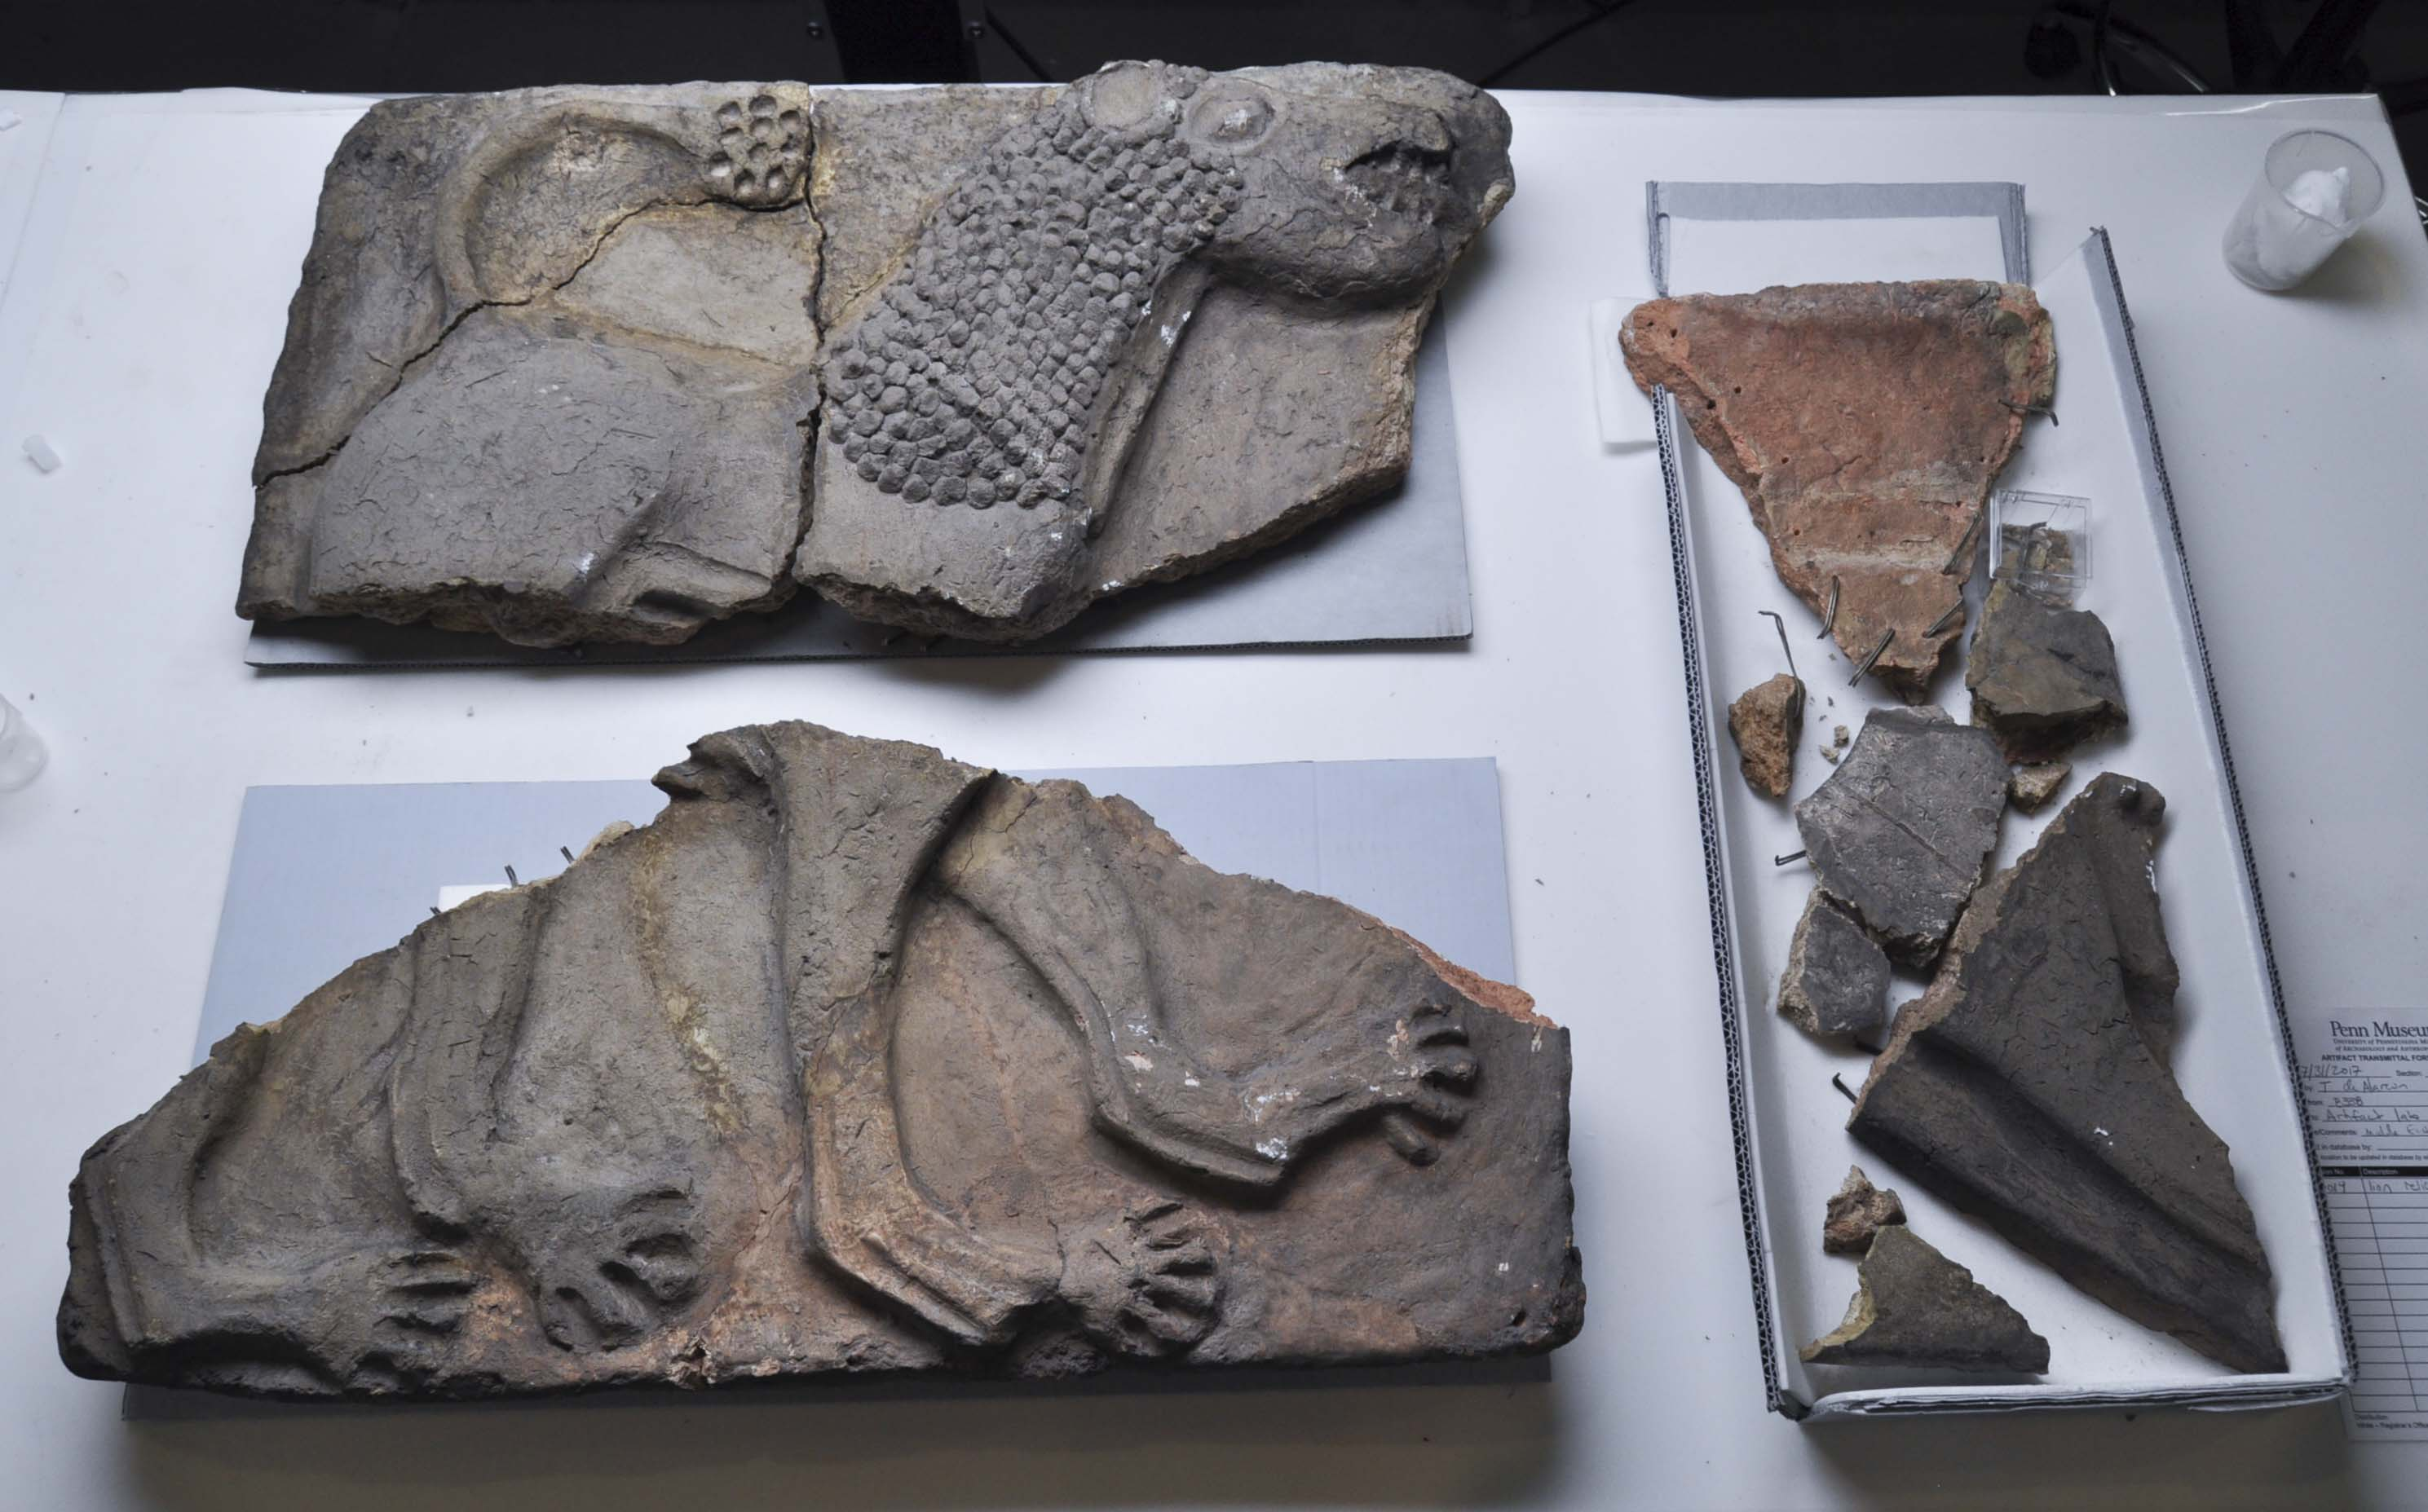 B20014: the lion relief in fragments